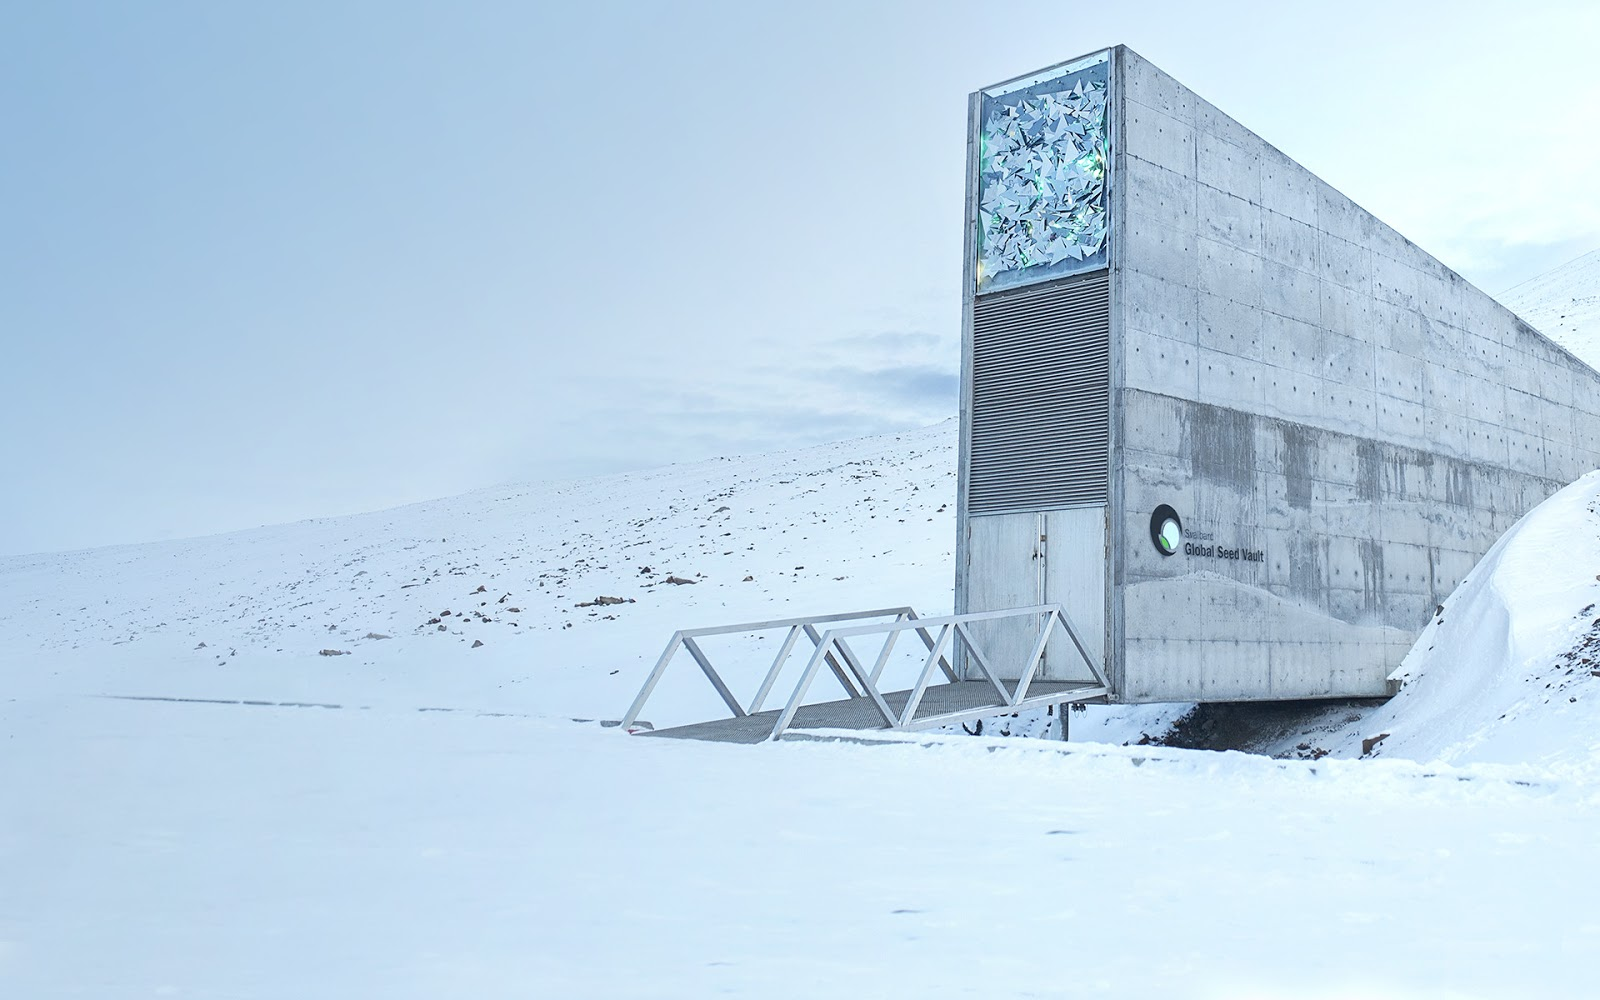 Architecture Around the World - Svalbard Global Seed Vault